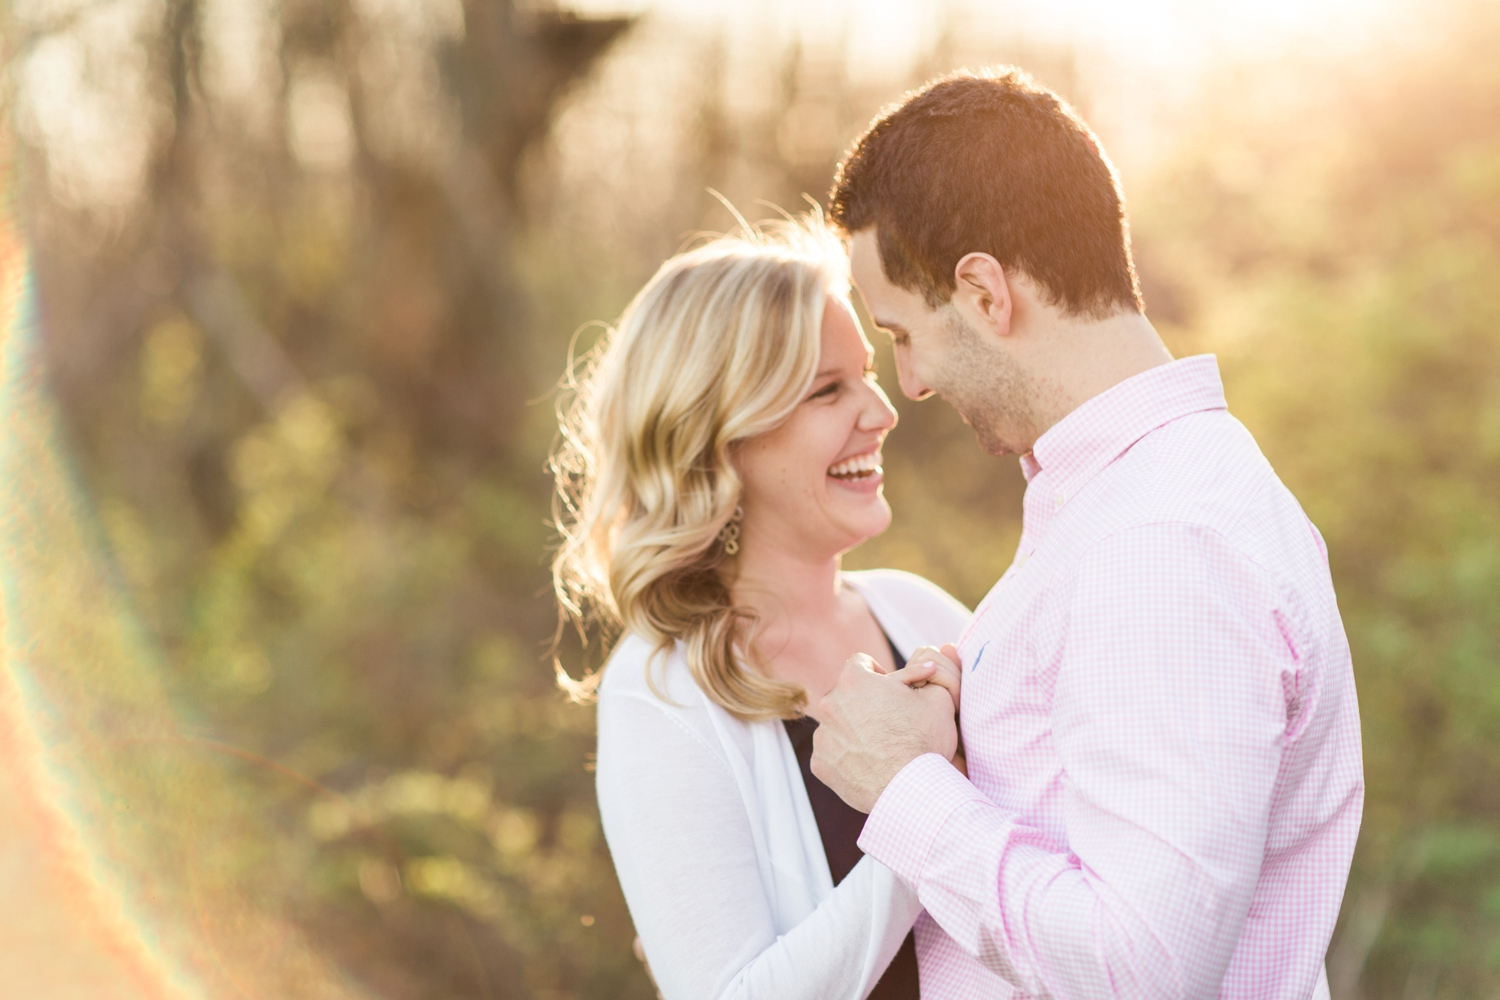 indianapolis_wedding_photographer_golden_hour_engagement_chloe_luka_photography_6124.jpg